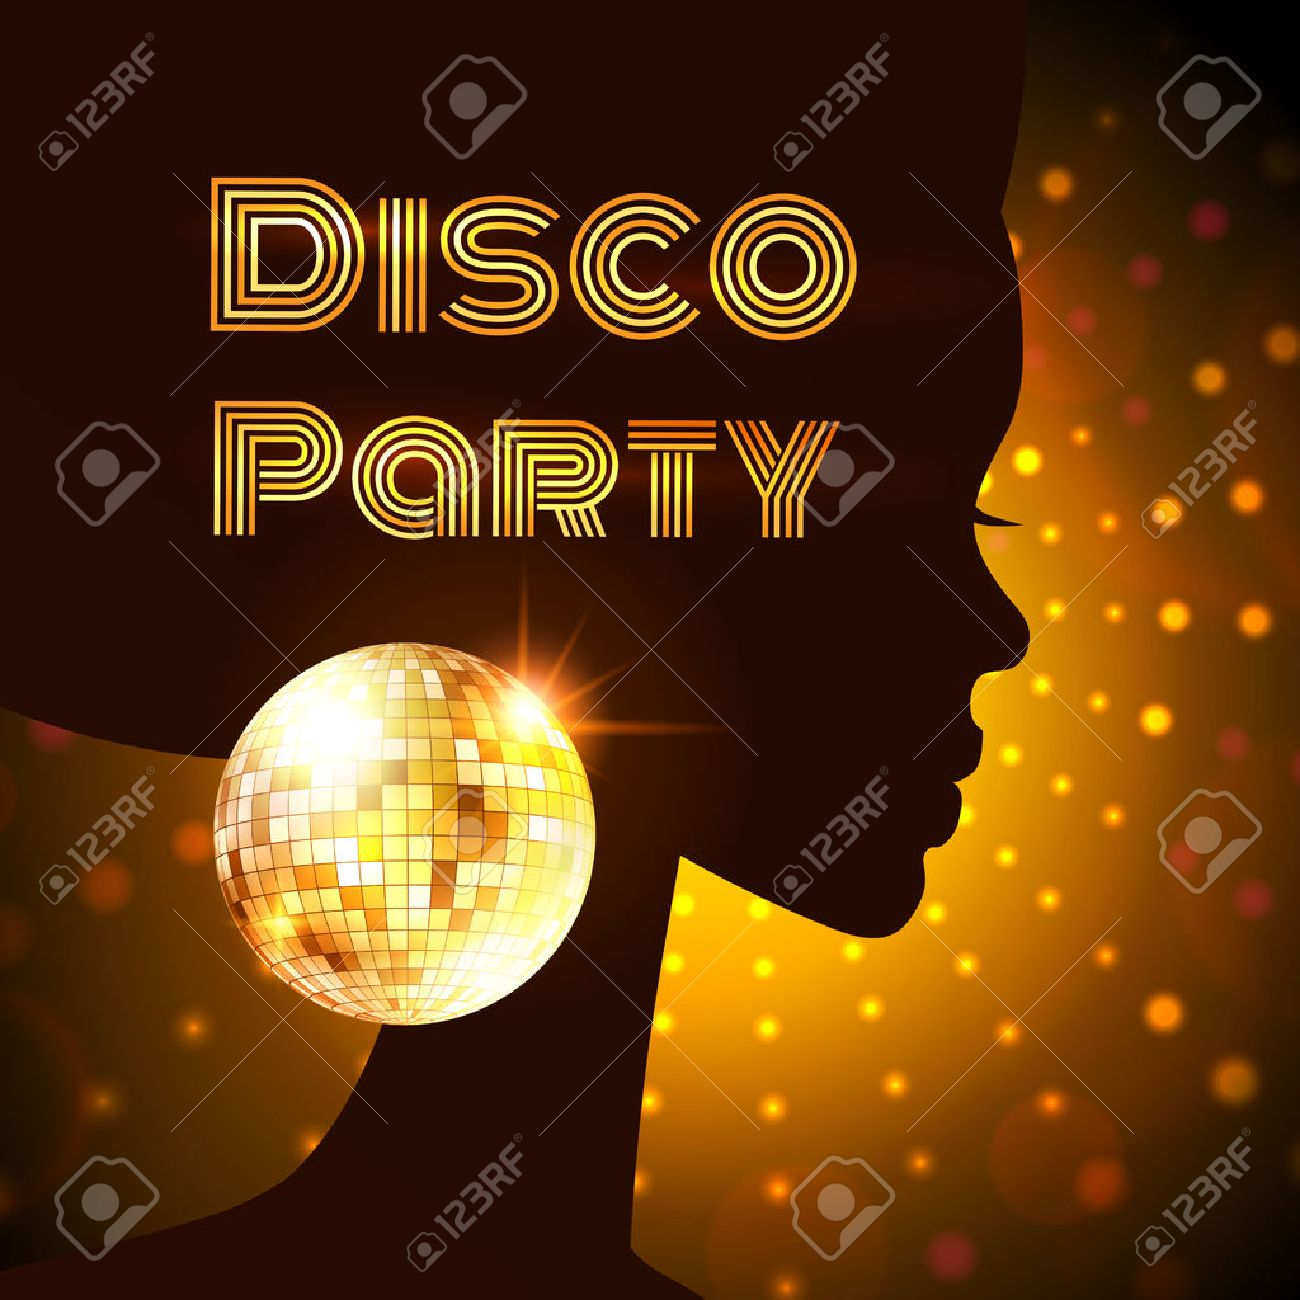 Disco Party Invitation Template With Silhouette Of A Girl Royalty – Disco Party Invitations Free